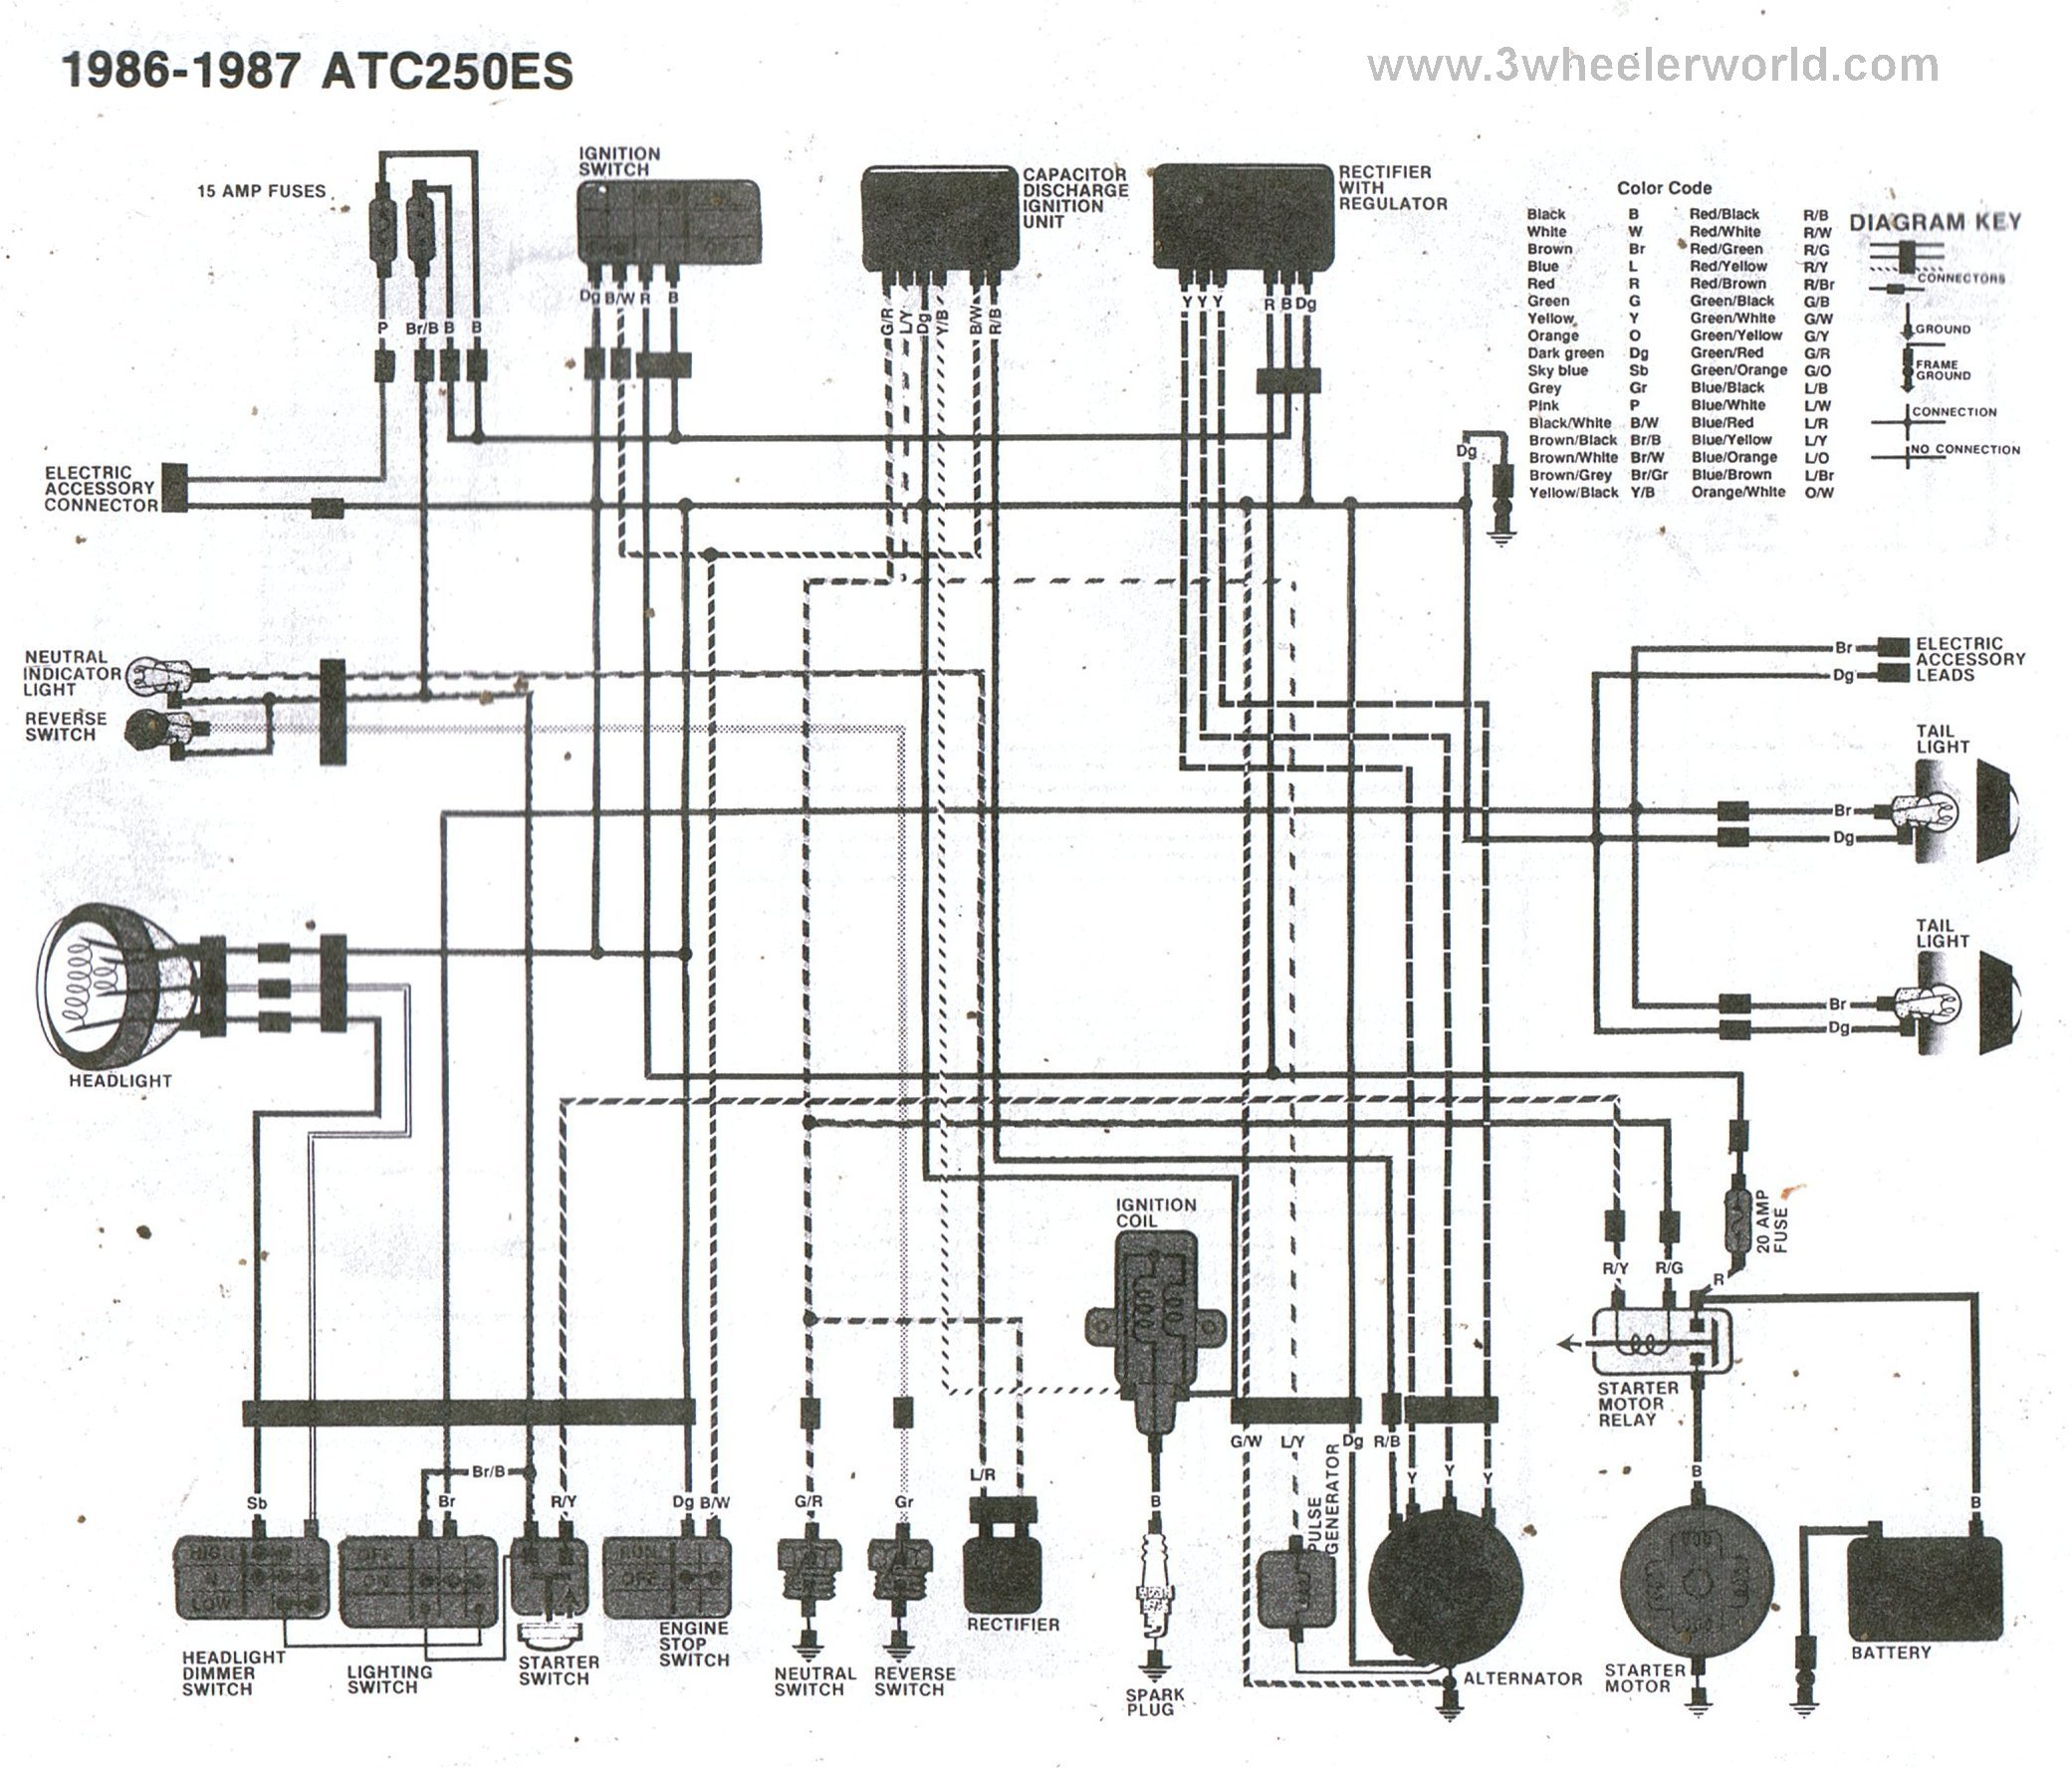 Honda 250 Atv Wiring Diagrams Diagram Will Be A Thing 3 Wheeler World Tech Help 90cc Chinese 1986